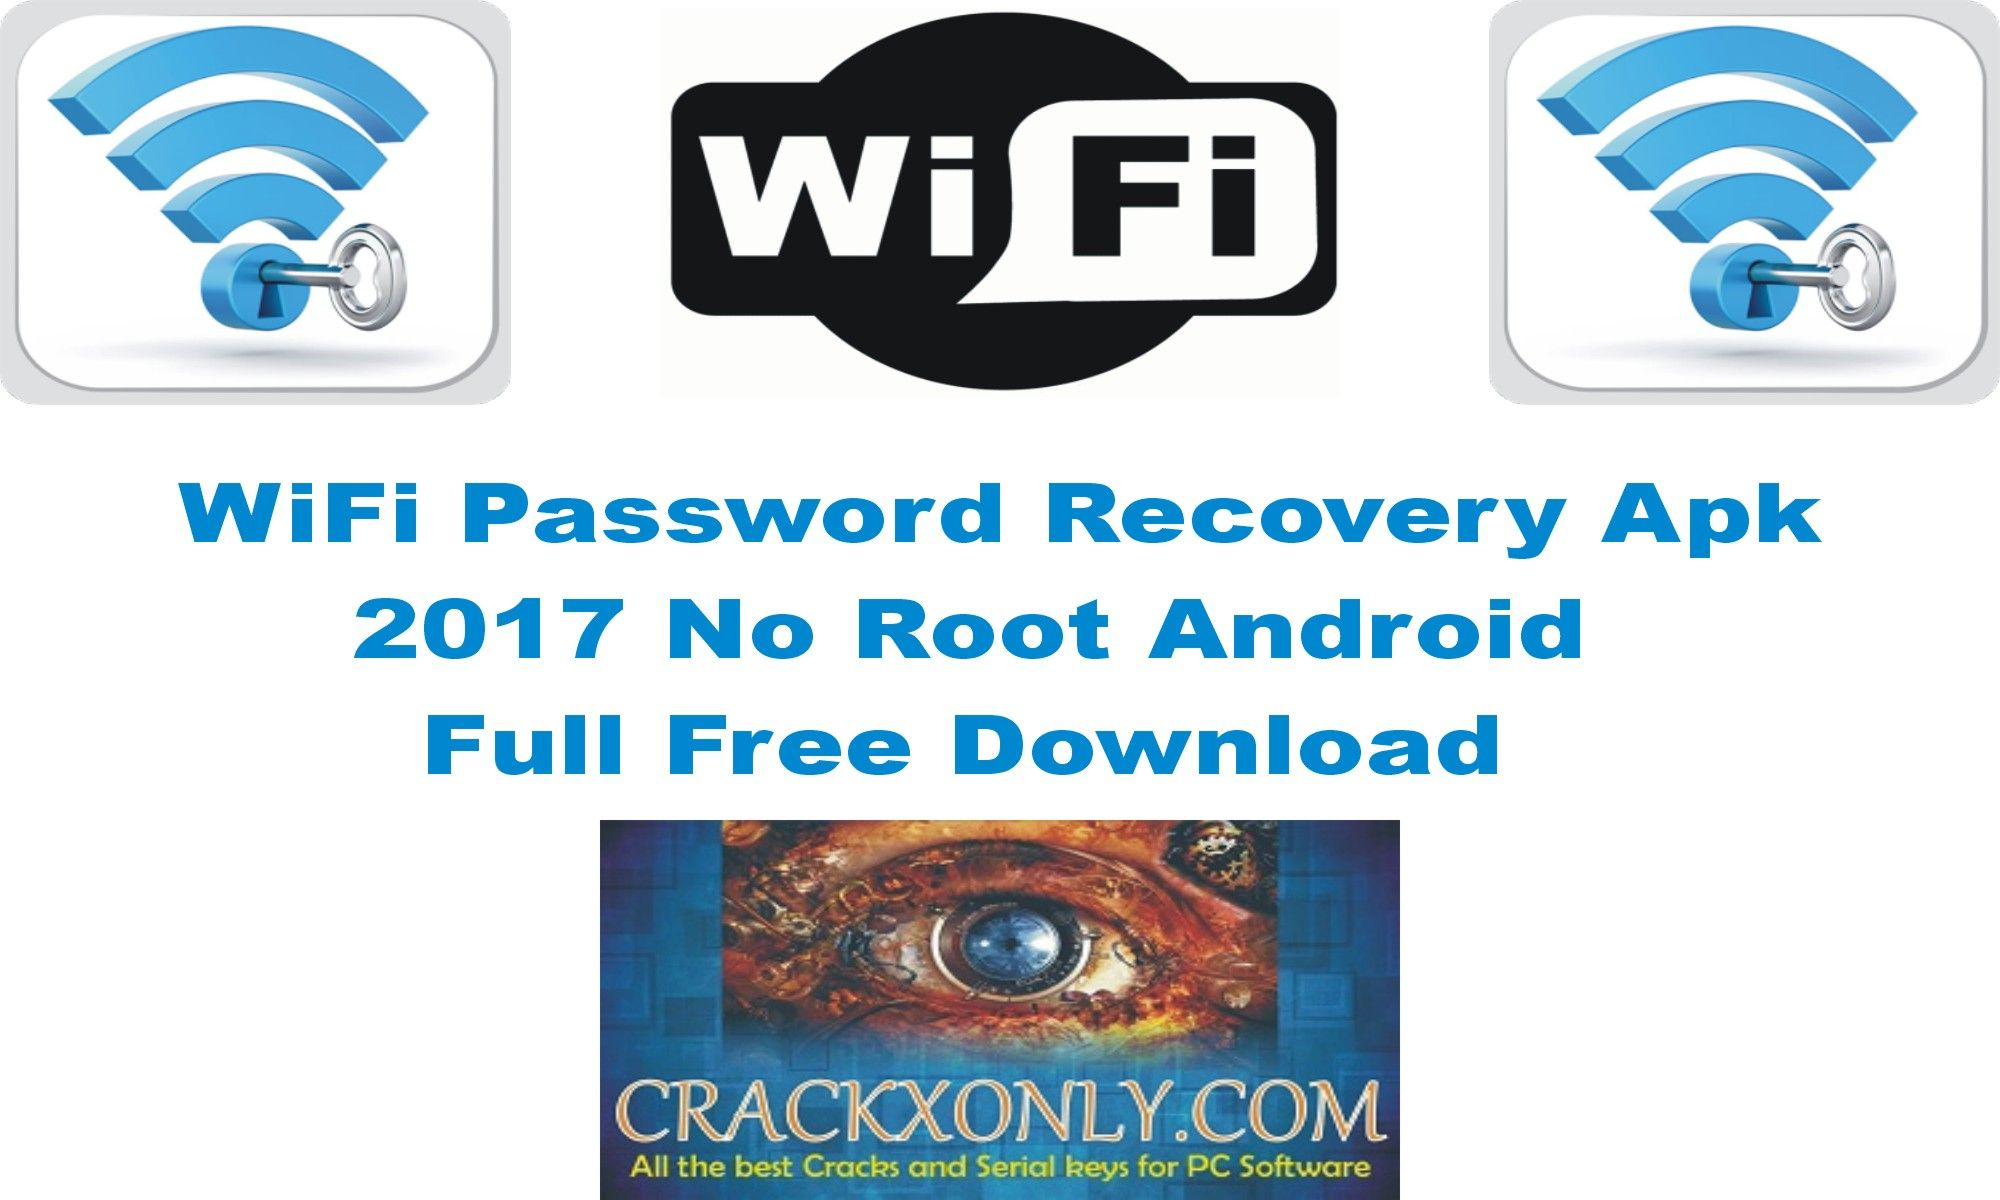 WiFi Password Recovery Apk 2017 No Root Android Full Free